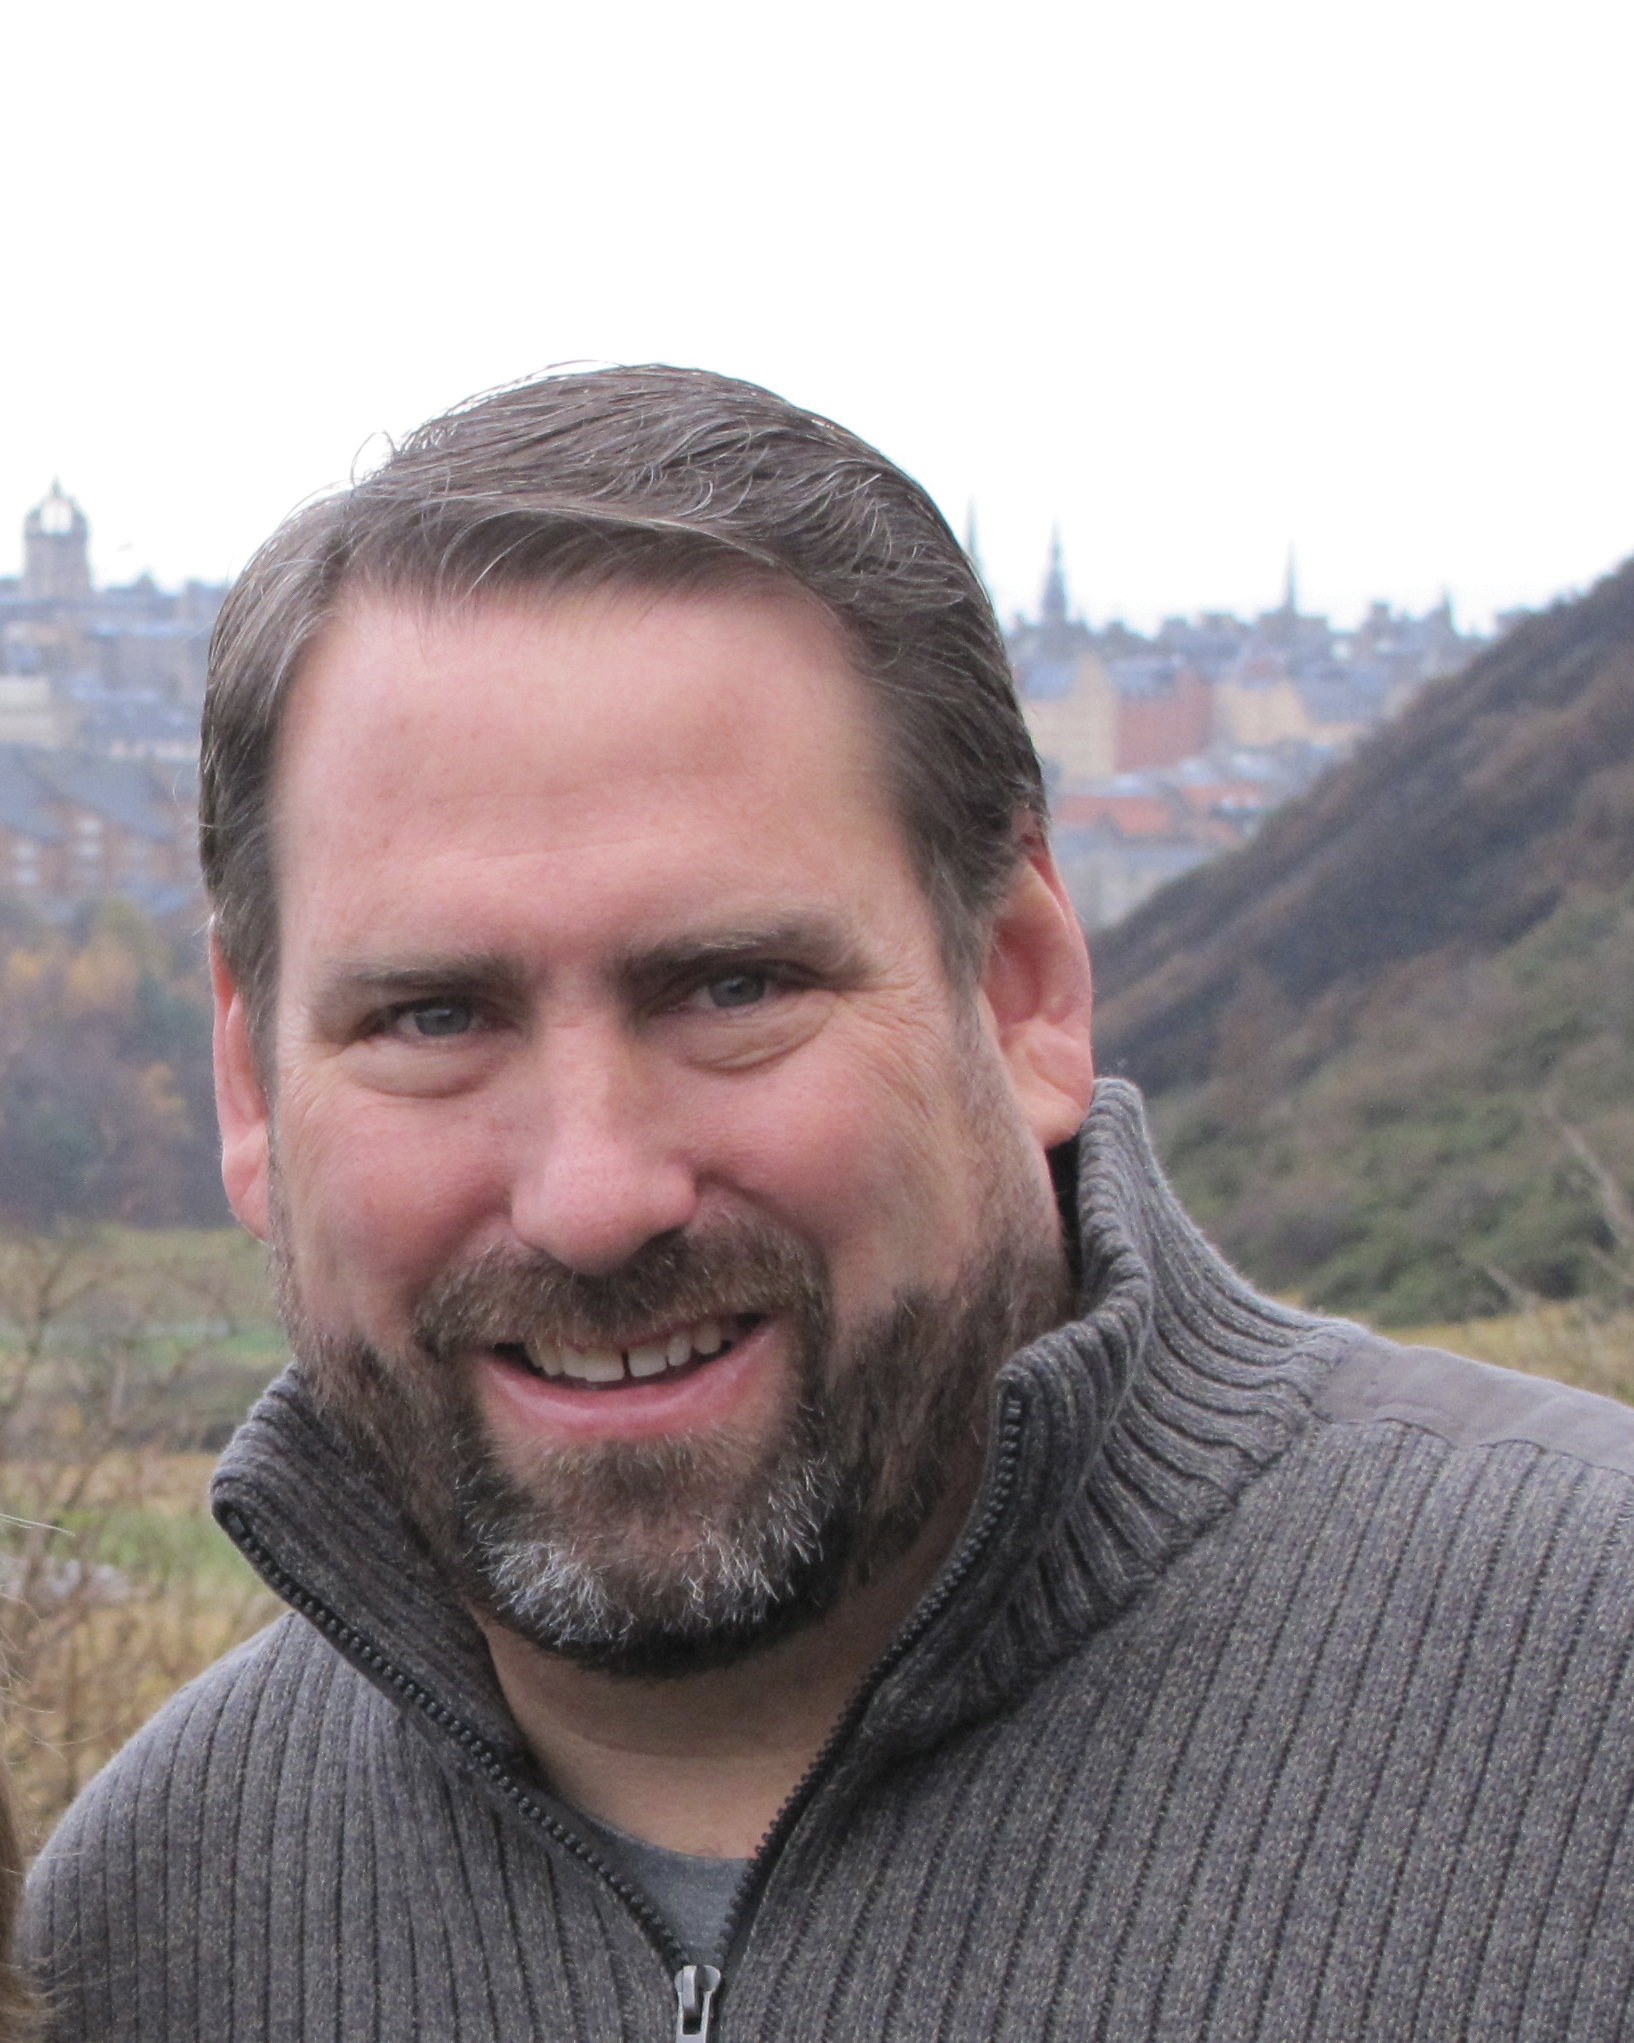 NEIL COLE - Neil Cole is an experienced church planter, author, artist and pastor. He is credited as a key catalyst in the organic church movement and is founder of Church Multiplication Associates (CMA), which has helped to start tens of thousands of churches in 50 states and 50+ nations in only 15 years. Neil is also an international speaker and has authored many books including Organic Church, Church 3.0, Primal Fire and One Thing. He lives wife his wife and canine companion Willow in Los Angeles. You can follow Neil on Twitter here.